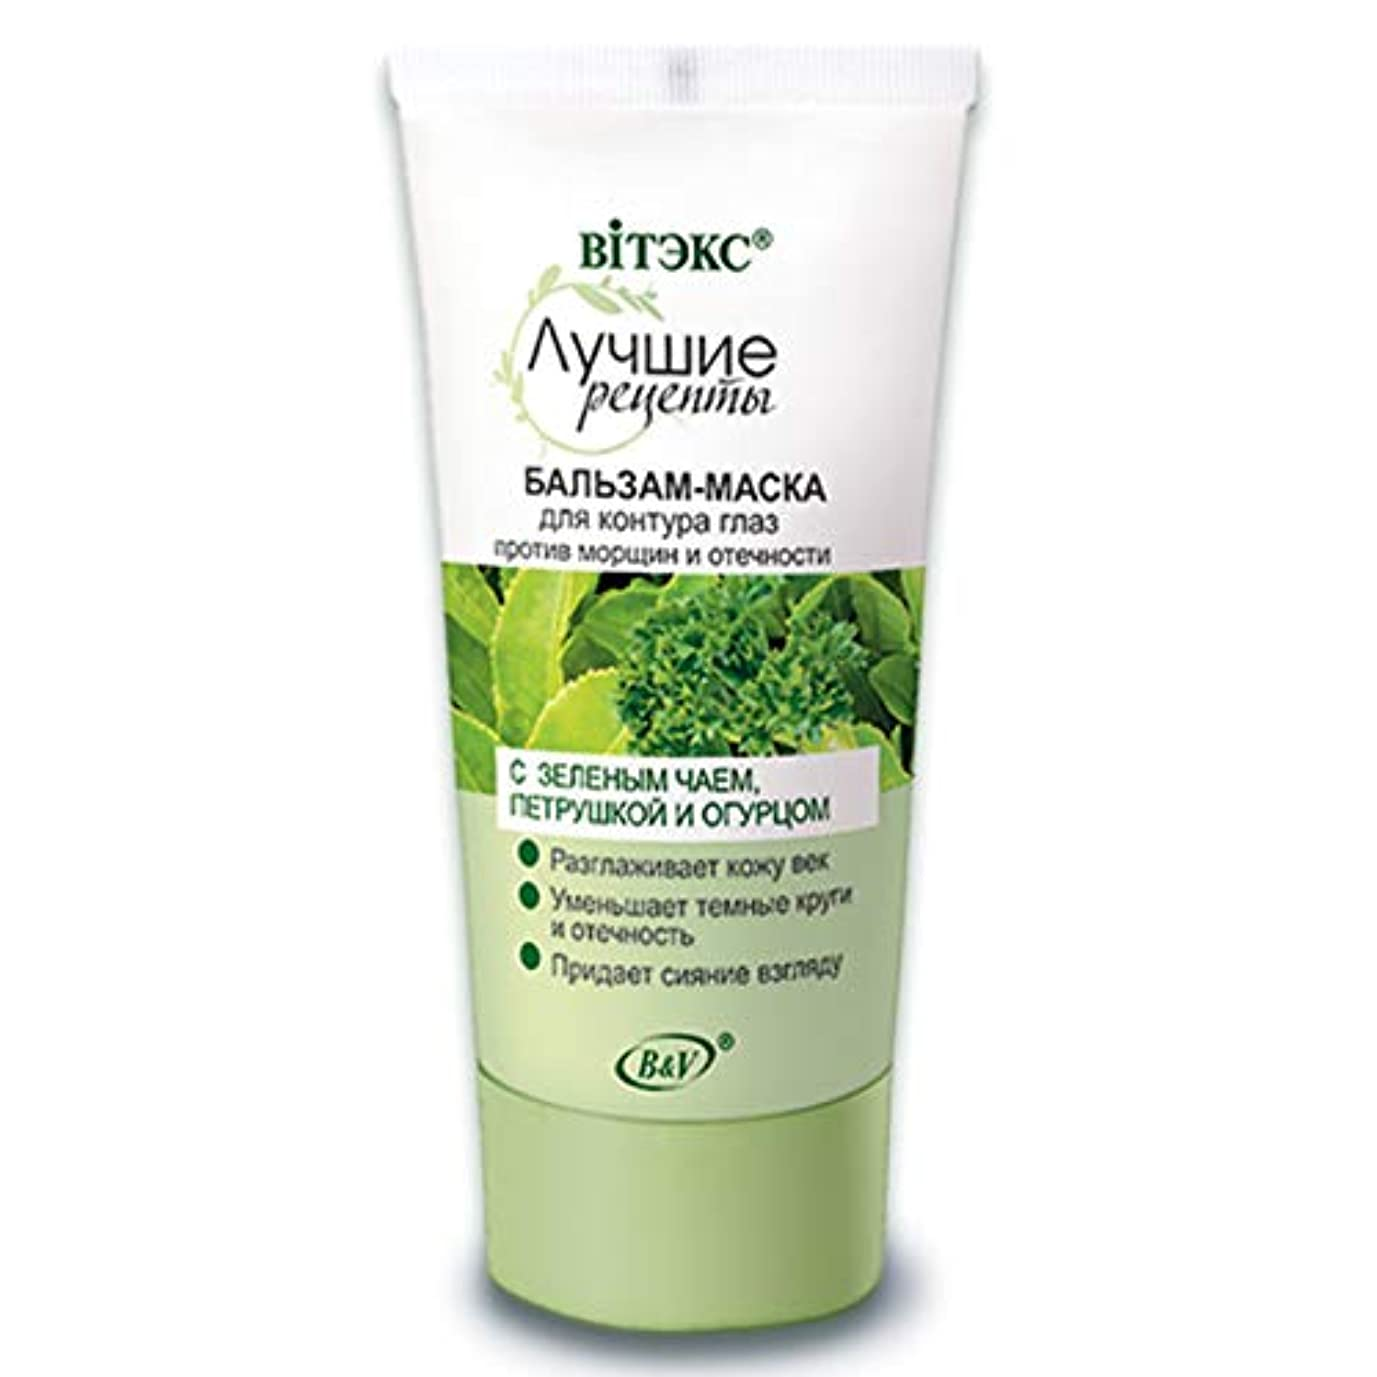 Bielita & Vitex   Best Recipes Line   Anti-Wrinkle & Anti-Puffiness Balm Mask for Eye Contour for All Skin Types...